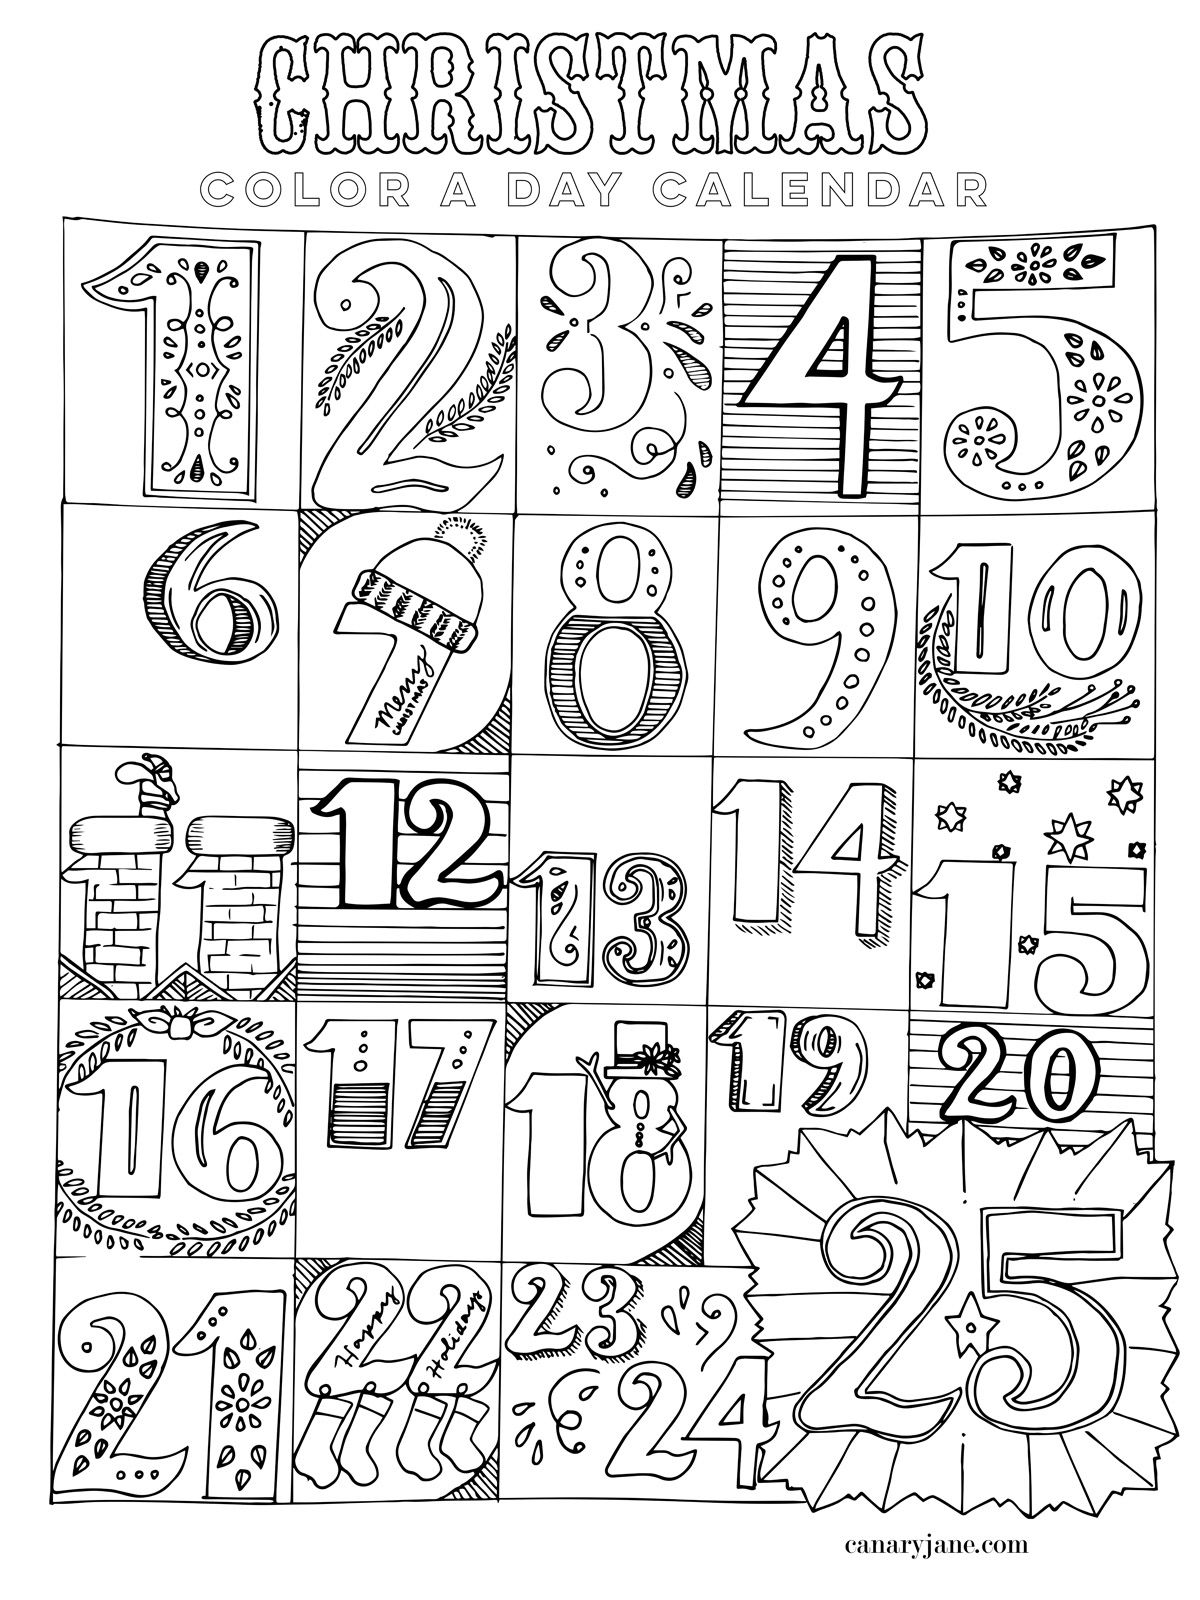 free advent calendar coloring pages top free advent calendar coloring pages thousand of the calendar advent free coloring pages